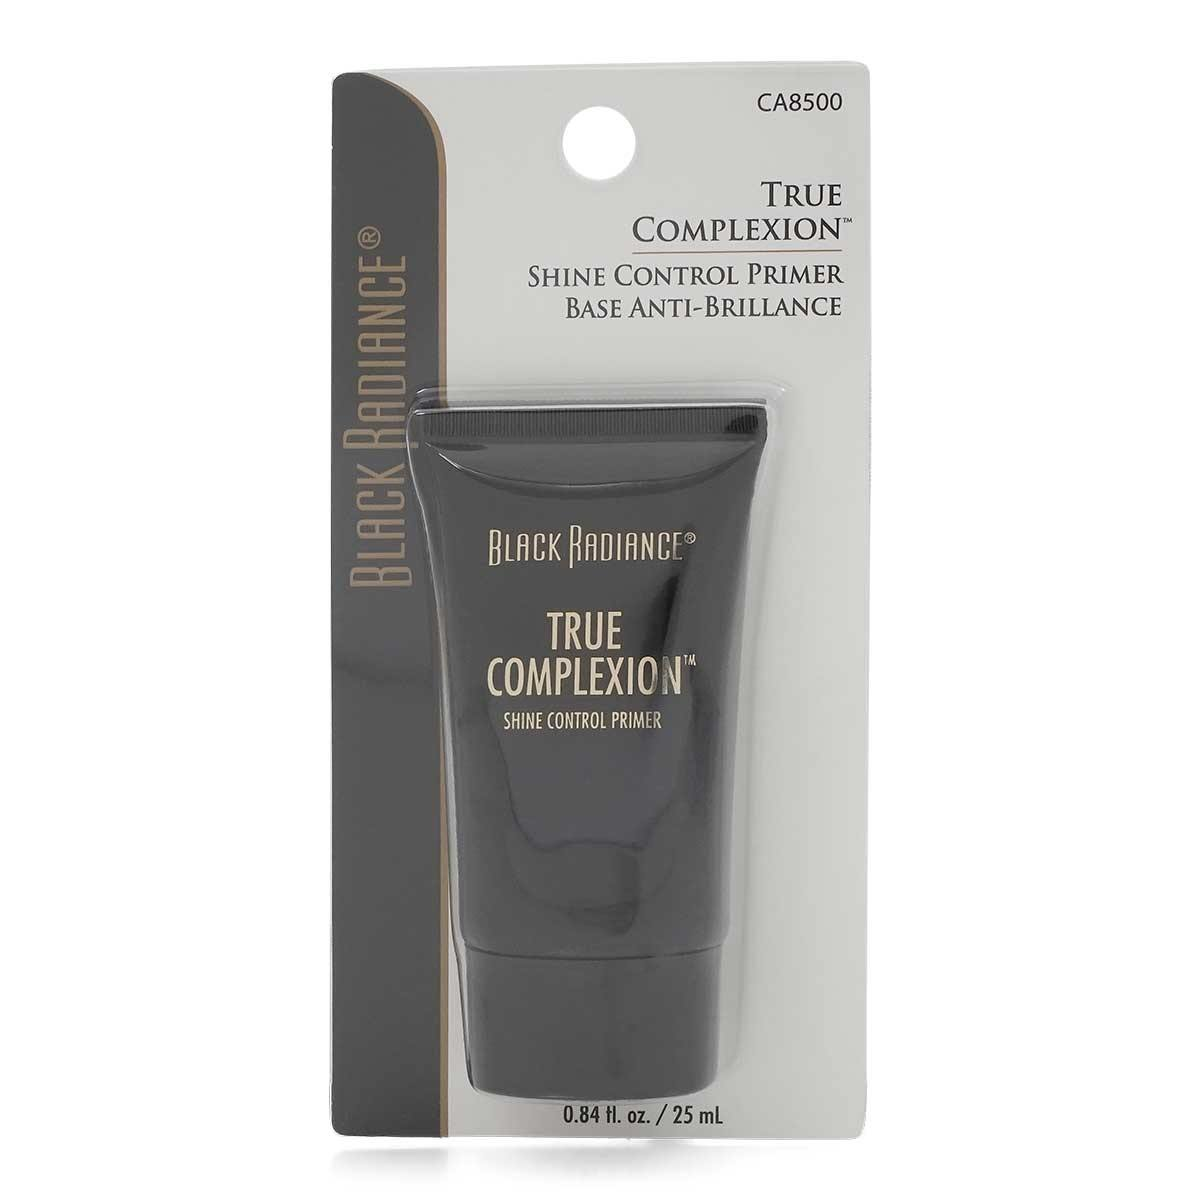 Black Radiance True Complexion Shine Control Primer (12/cs)